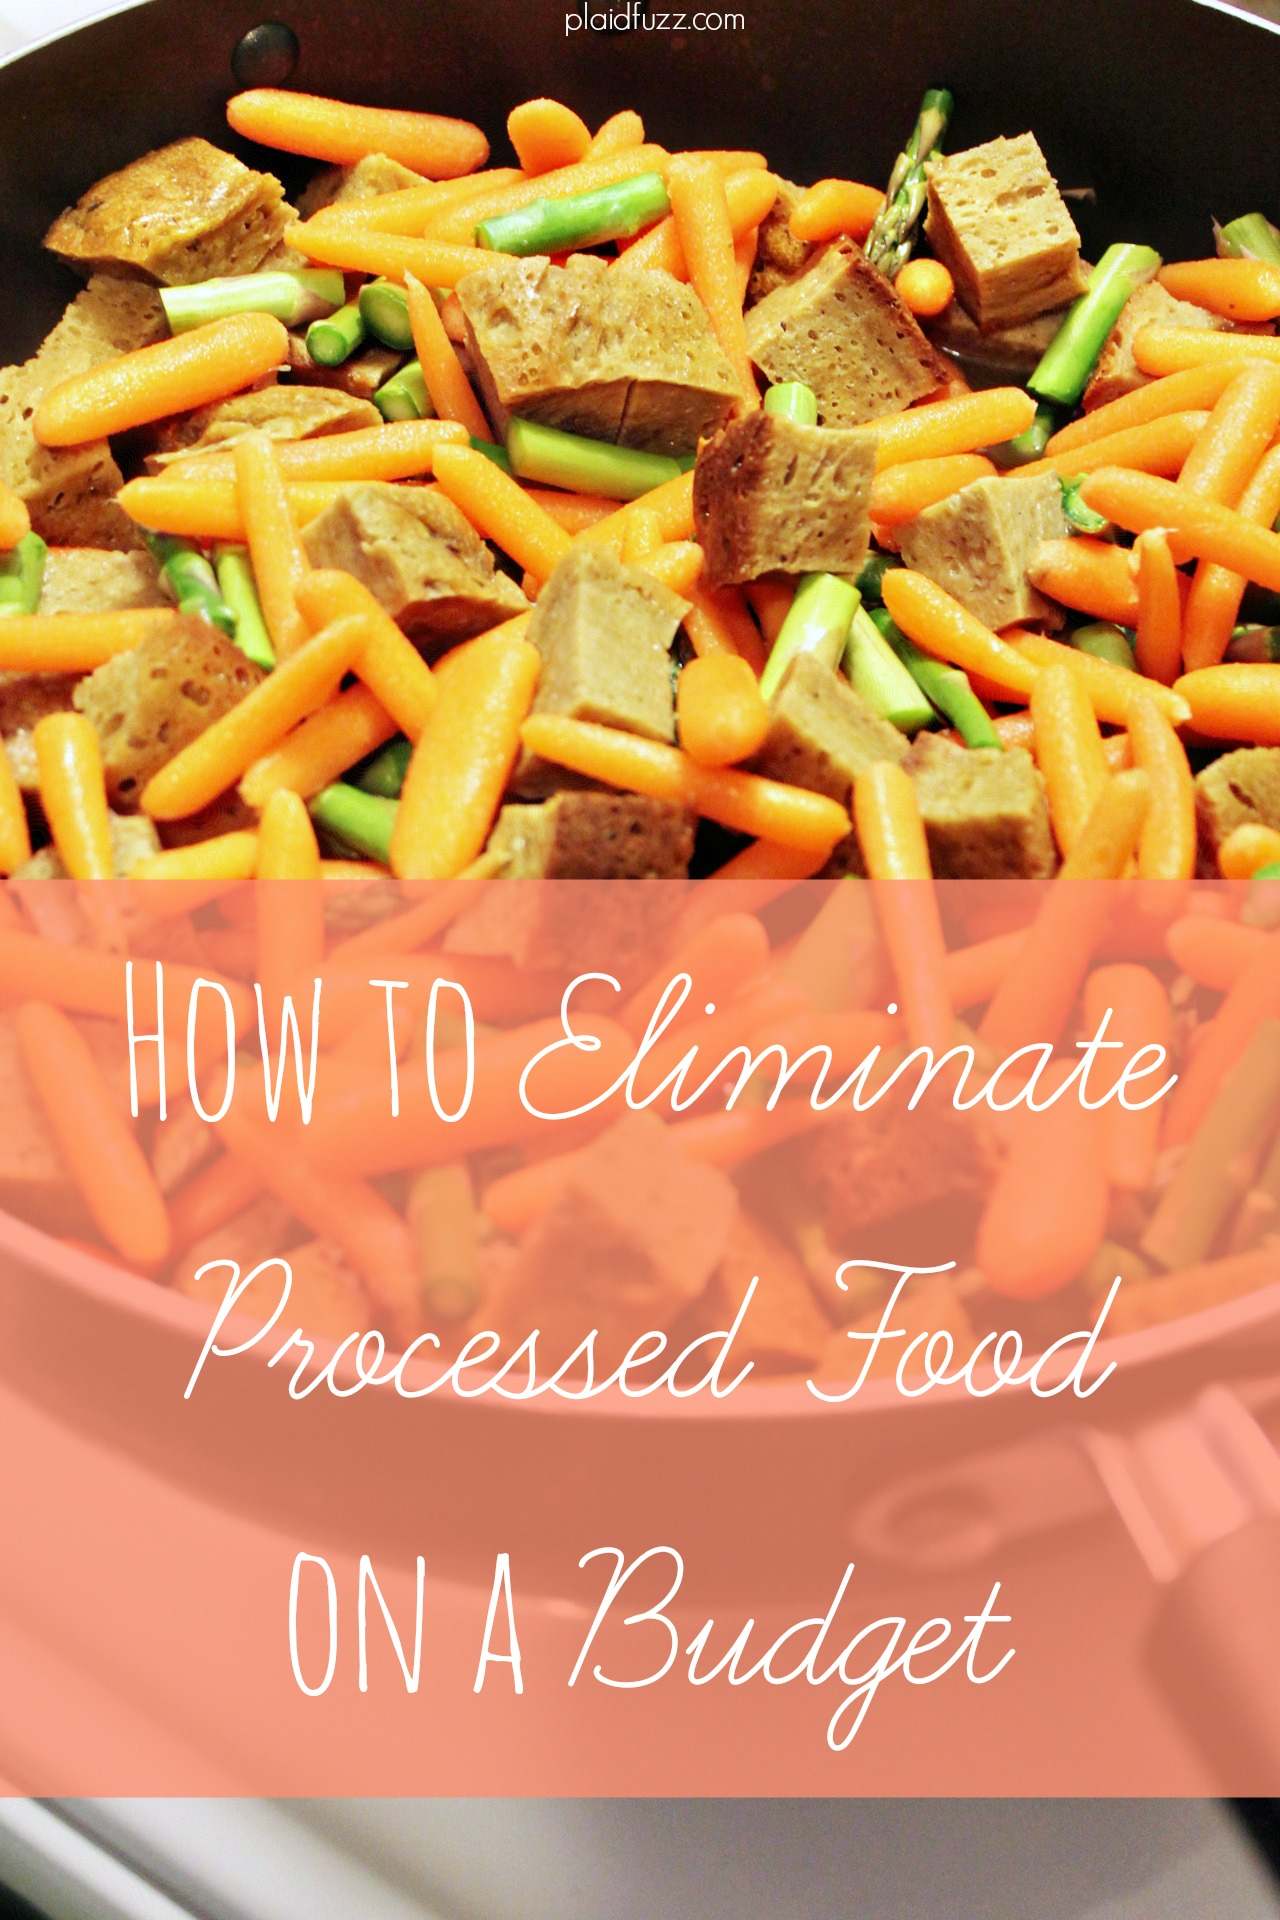 How To Eliminate Processed Food On A Budget